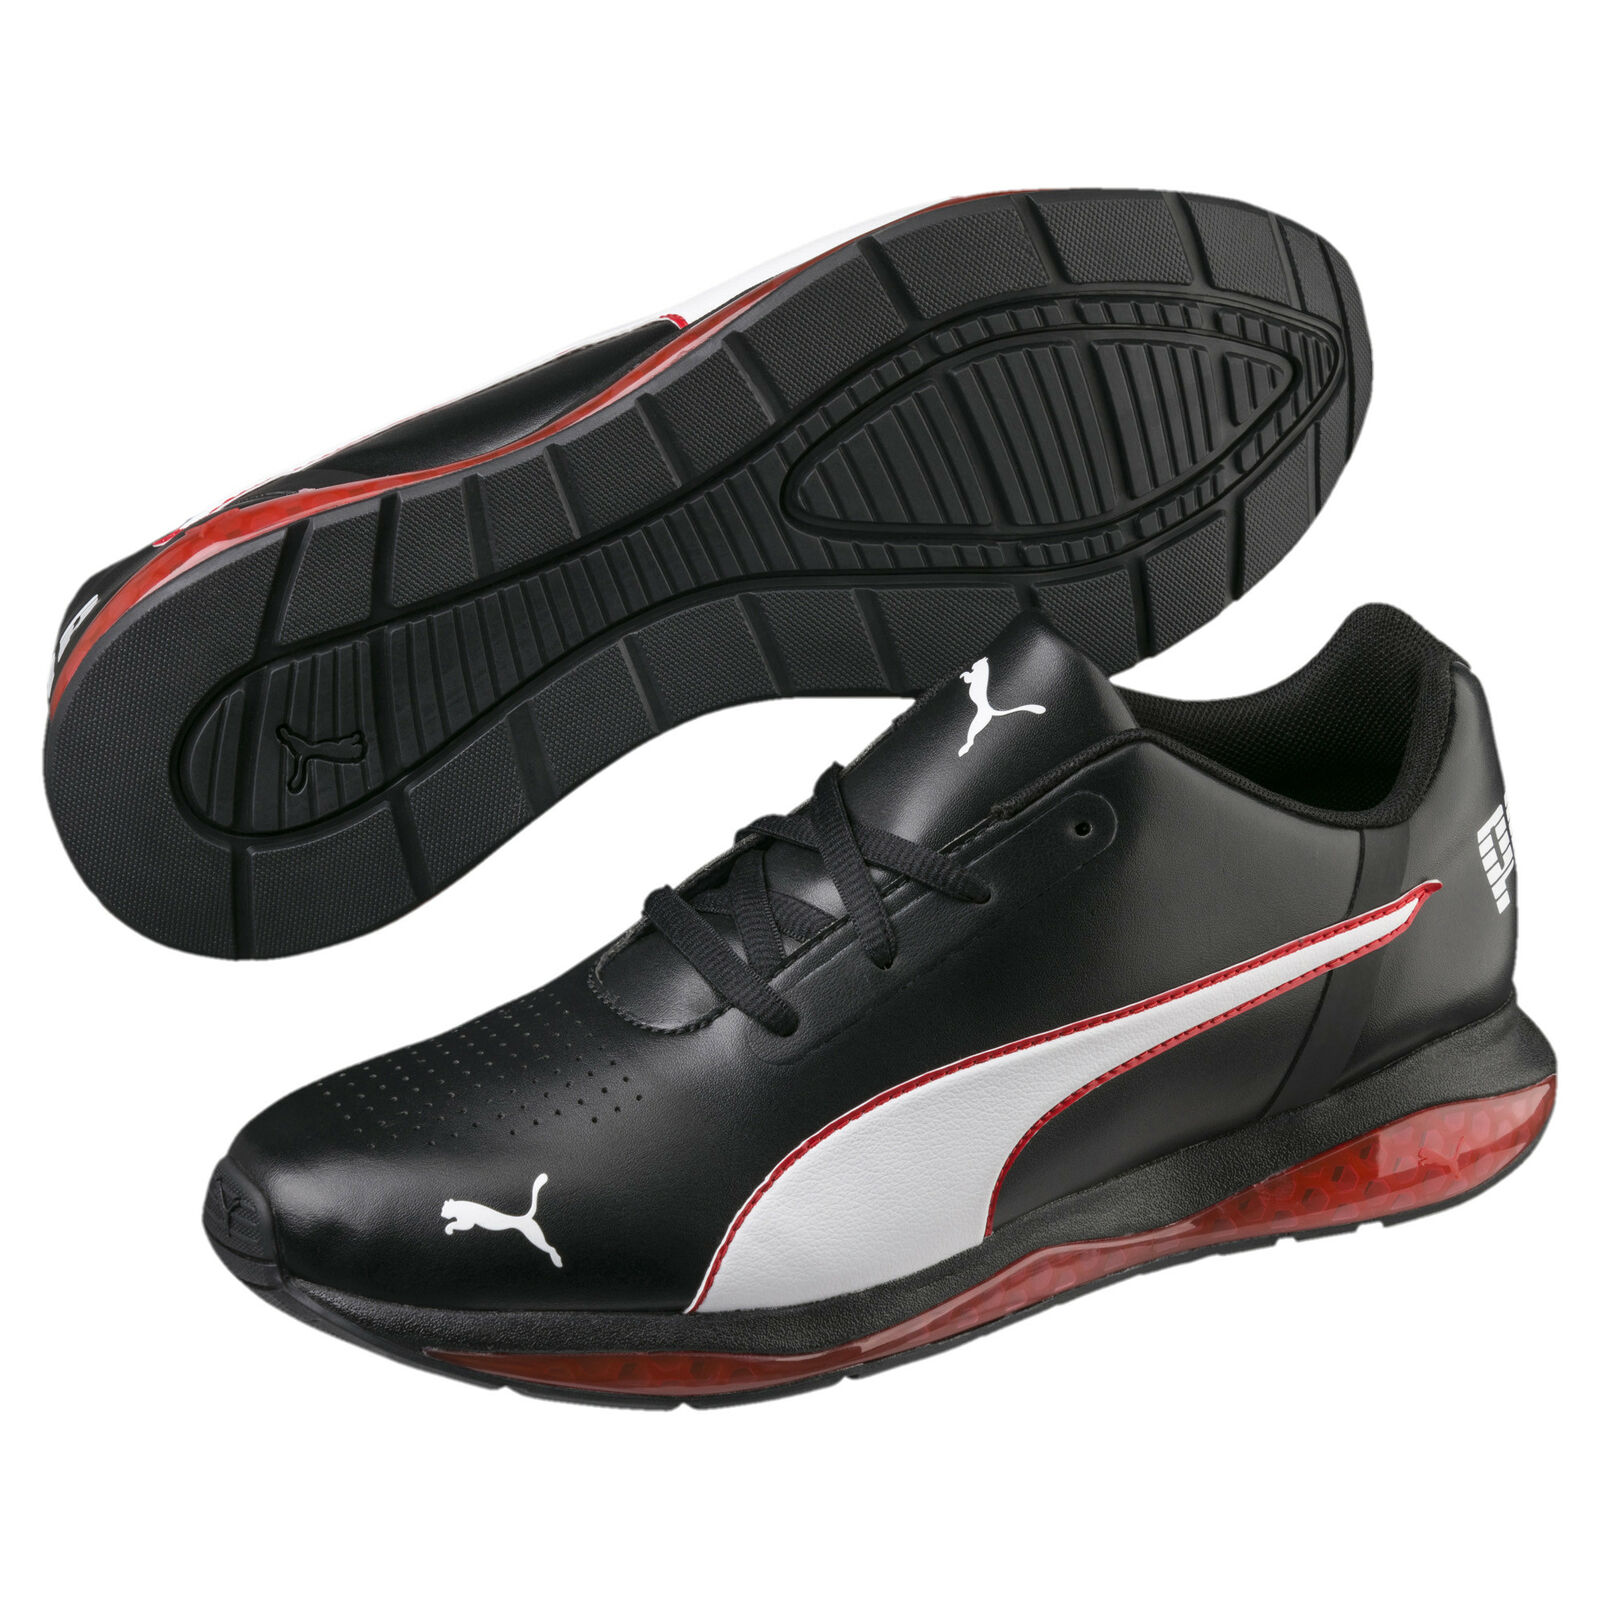 PUMA CELL Ultimate Training Shoes Men Shoe Running